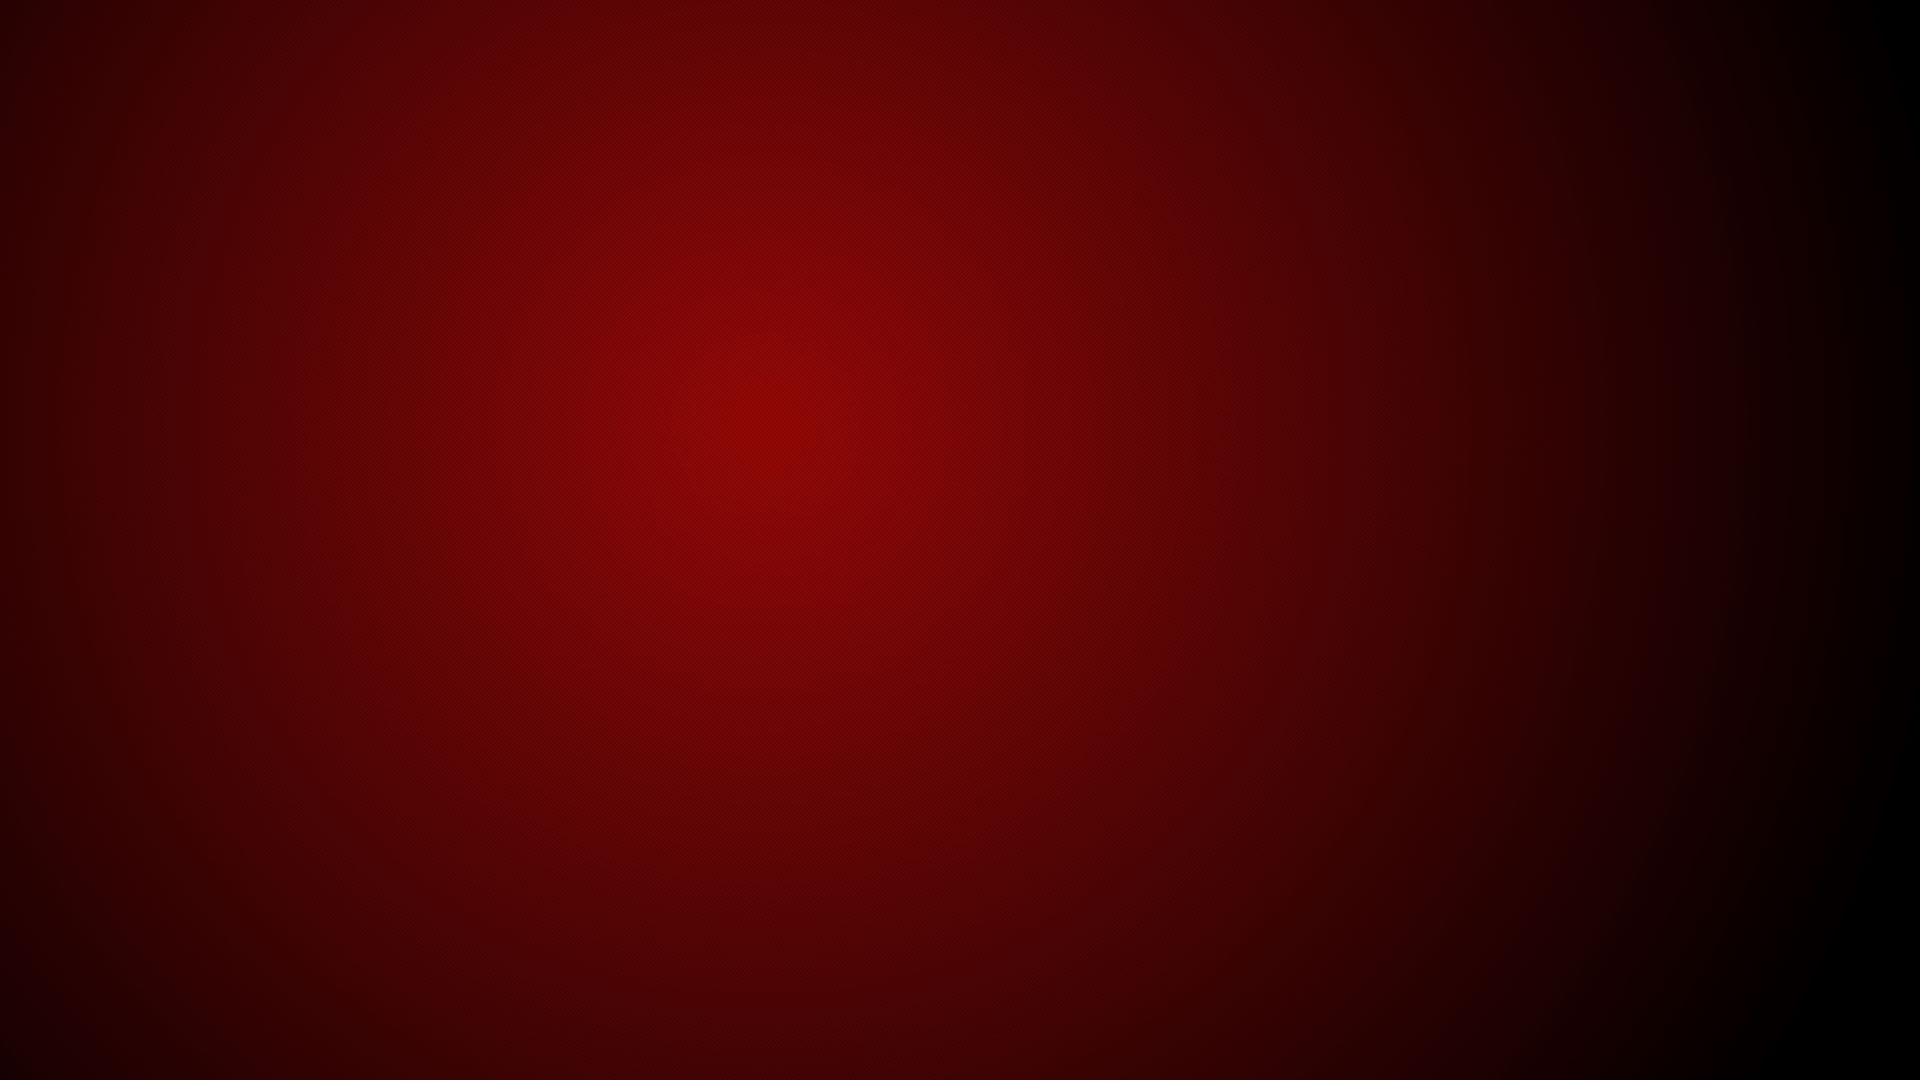 backgrounds-gradient-red-red-background-844915-1920x1080